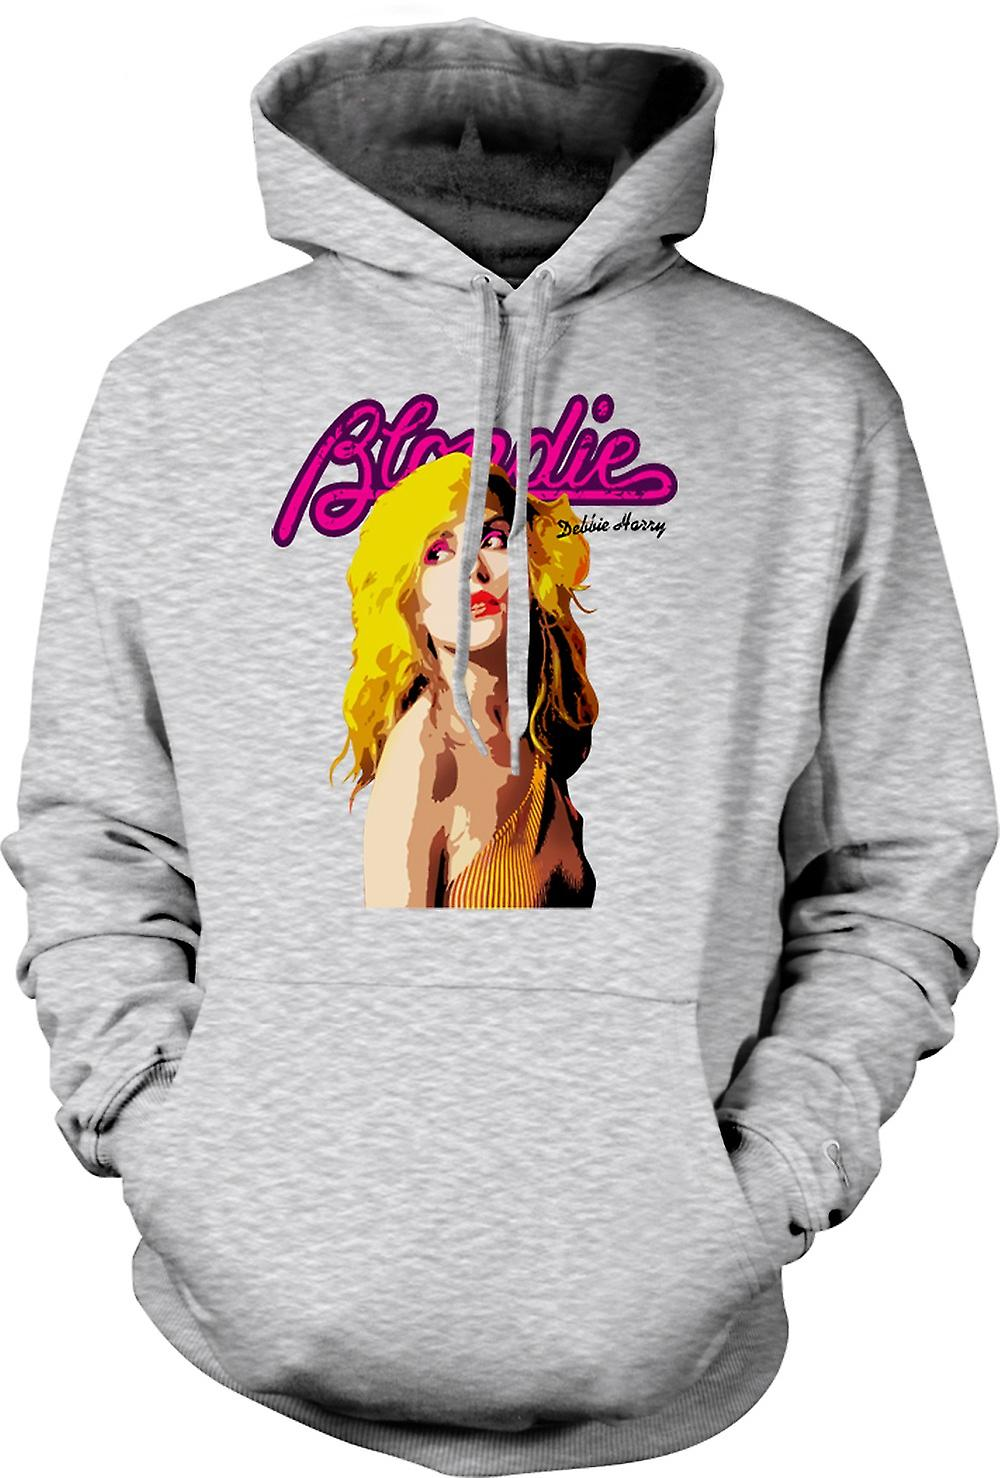 Mens Hoodie - Blondie - Debbie Harry